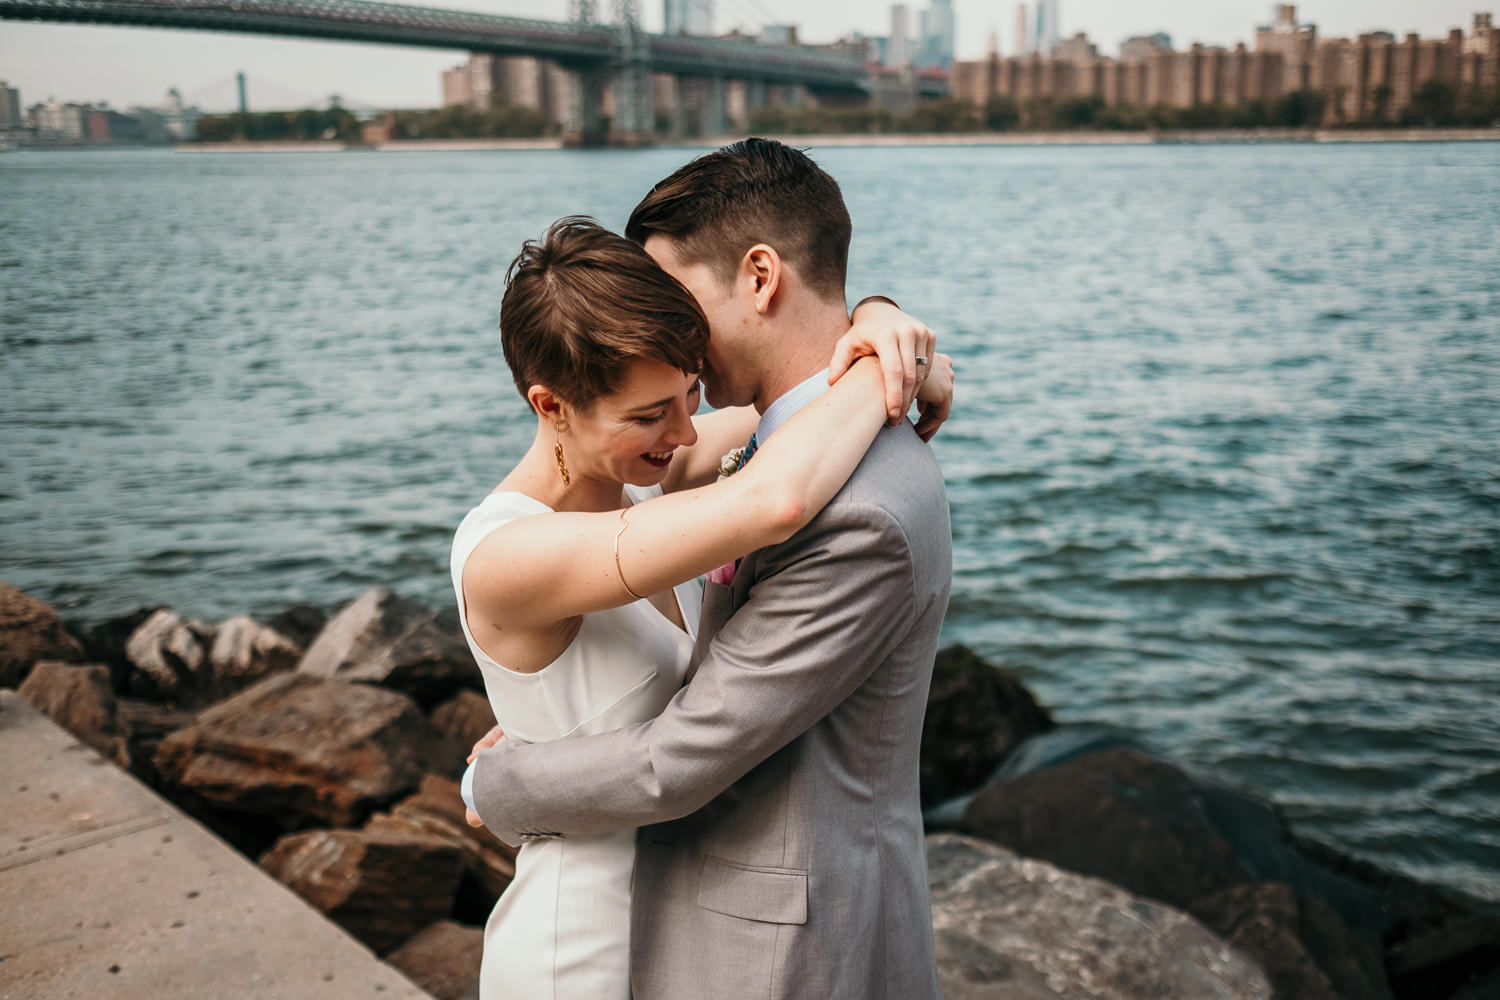 newlyweds hugging arms around waist and shoulders water in background